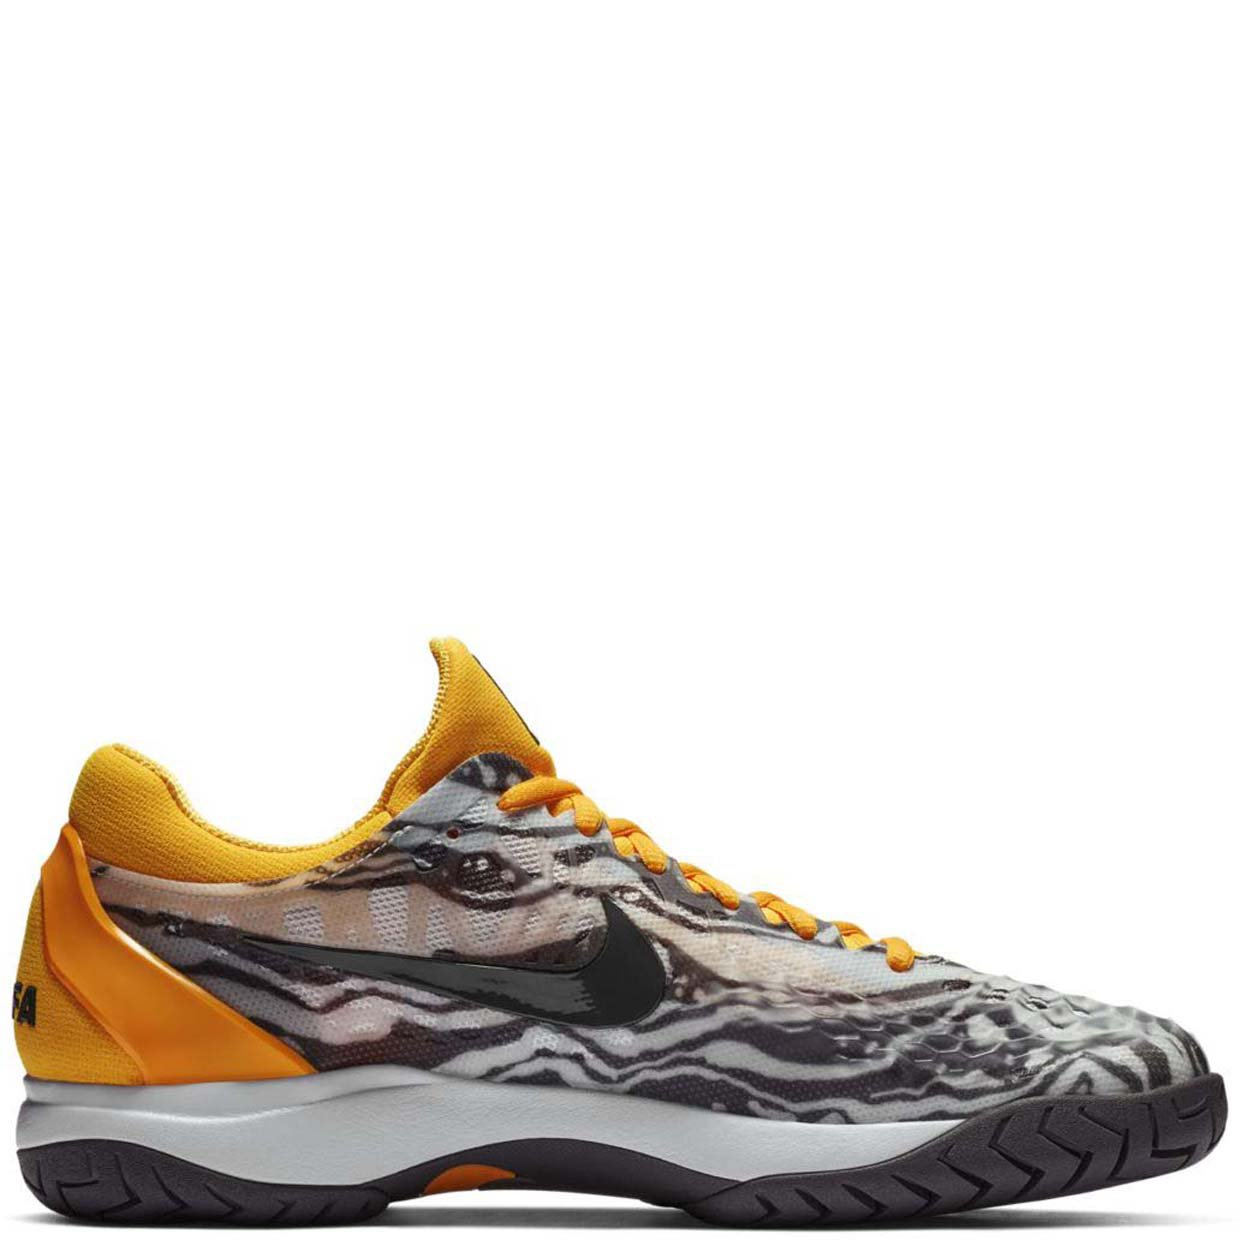 Кроссовки Nike MenS Zoom Cage 3 Tennis Shoe